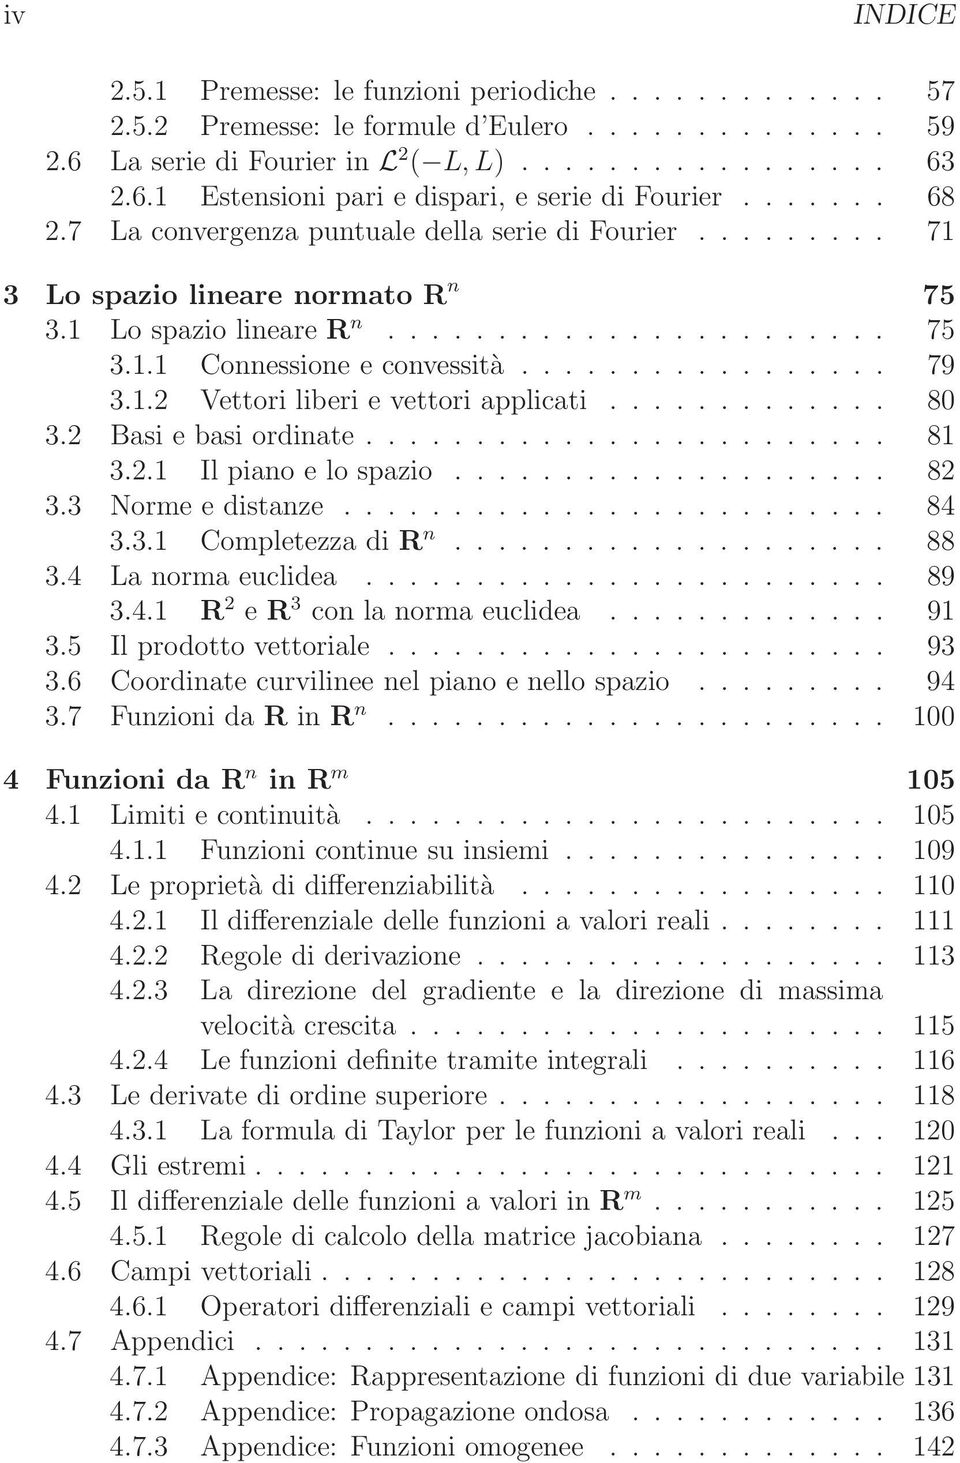 .2 Vettori liberi e vettori applicati............. 8 3.2 Basi e basi ordinate........................ 8 3.2. Il piano e lo spazio.................... 82 3.3 Norme e distanze......................... 84 3.